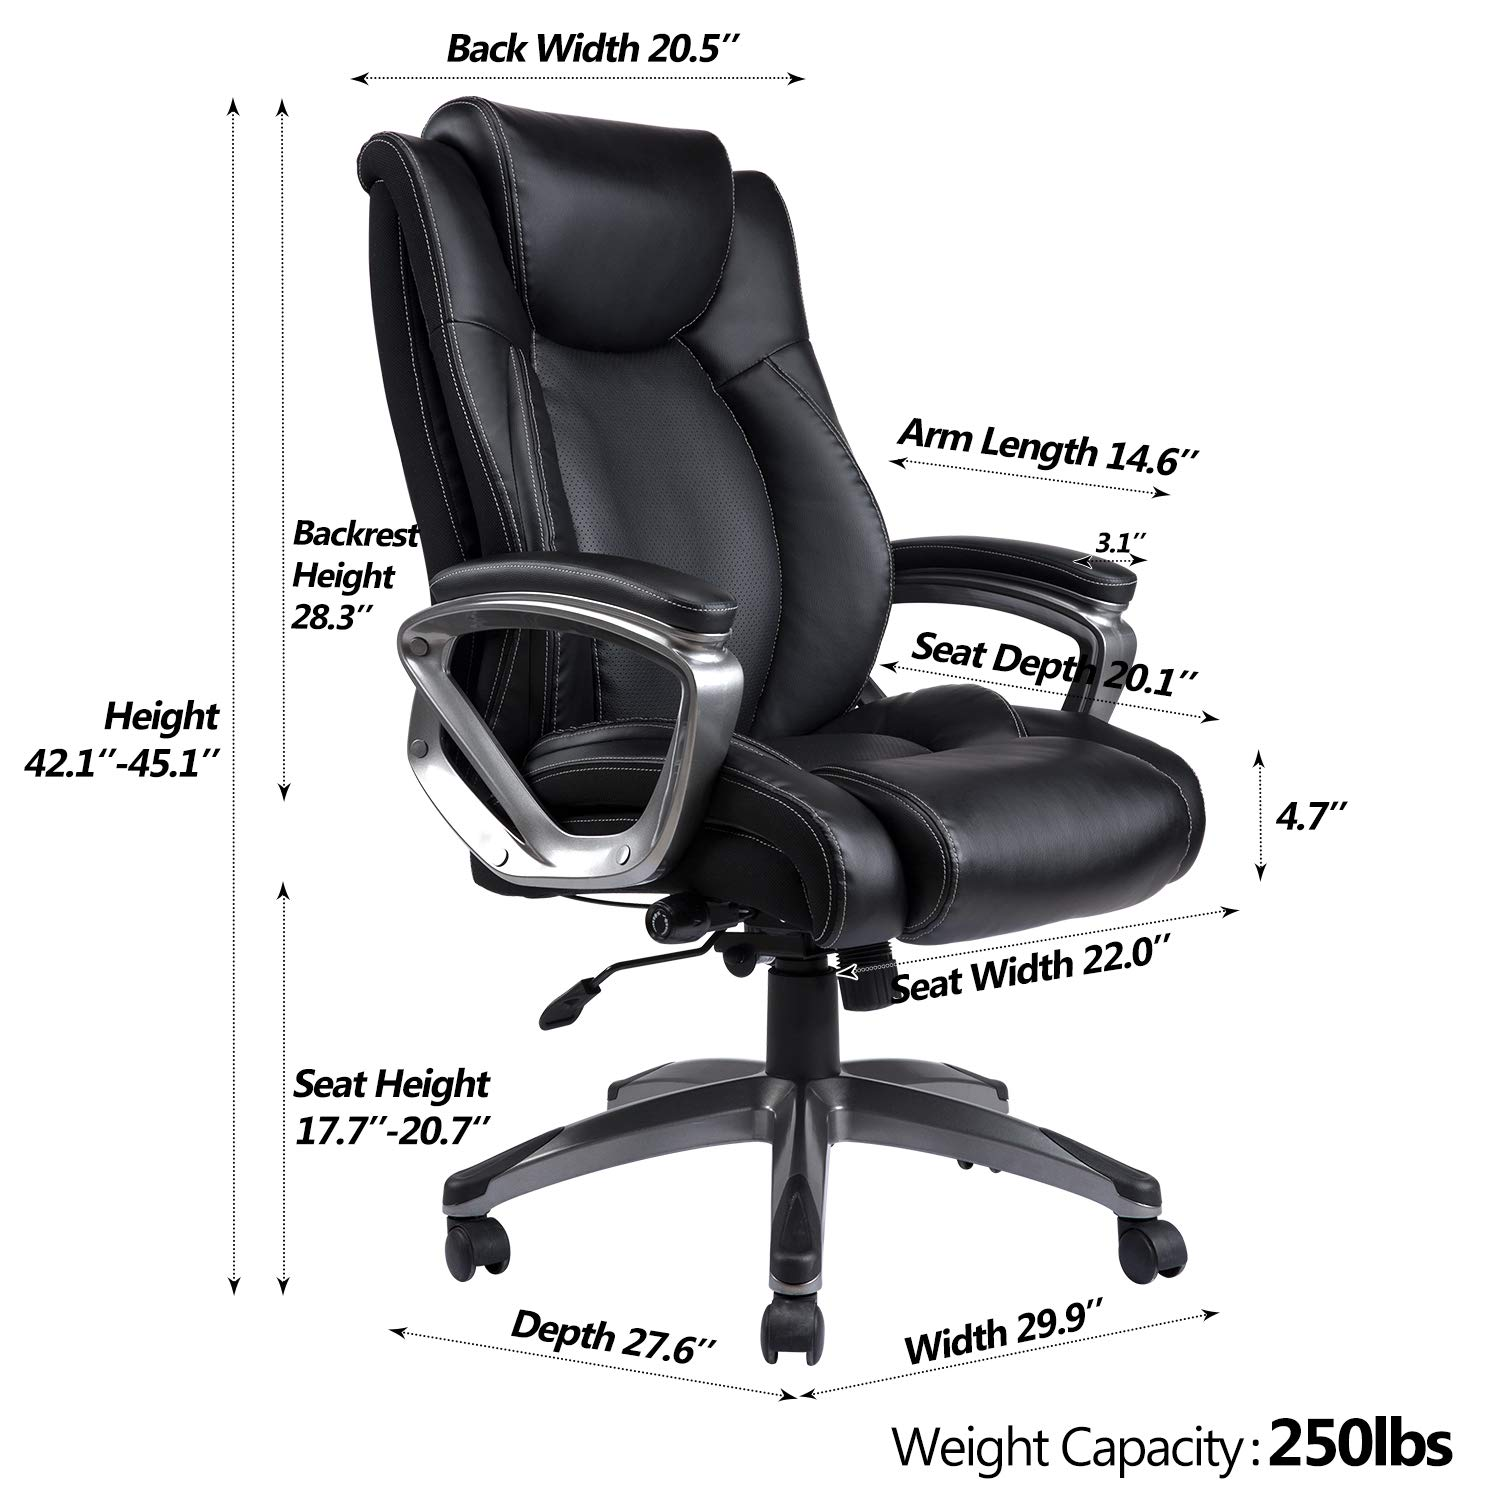 VANBOW Leather Memory Foam Office Chair - Adjustable Lumbar Support Knob and Tilt Angle High Back Executive Computer Desk Chair, Thick Padding for Comfort Ergonomic Design for Lumbar Support, Black by VANBOW (Image #5)